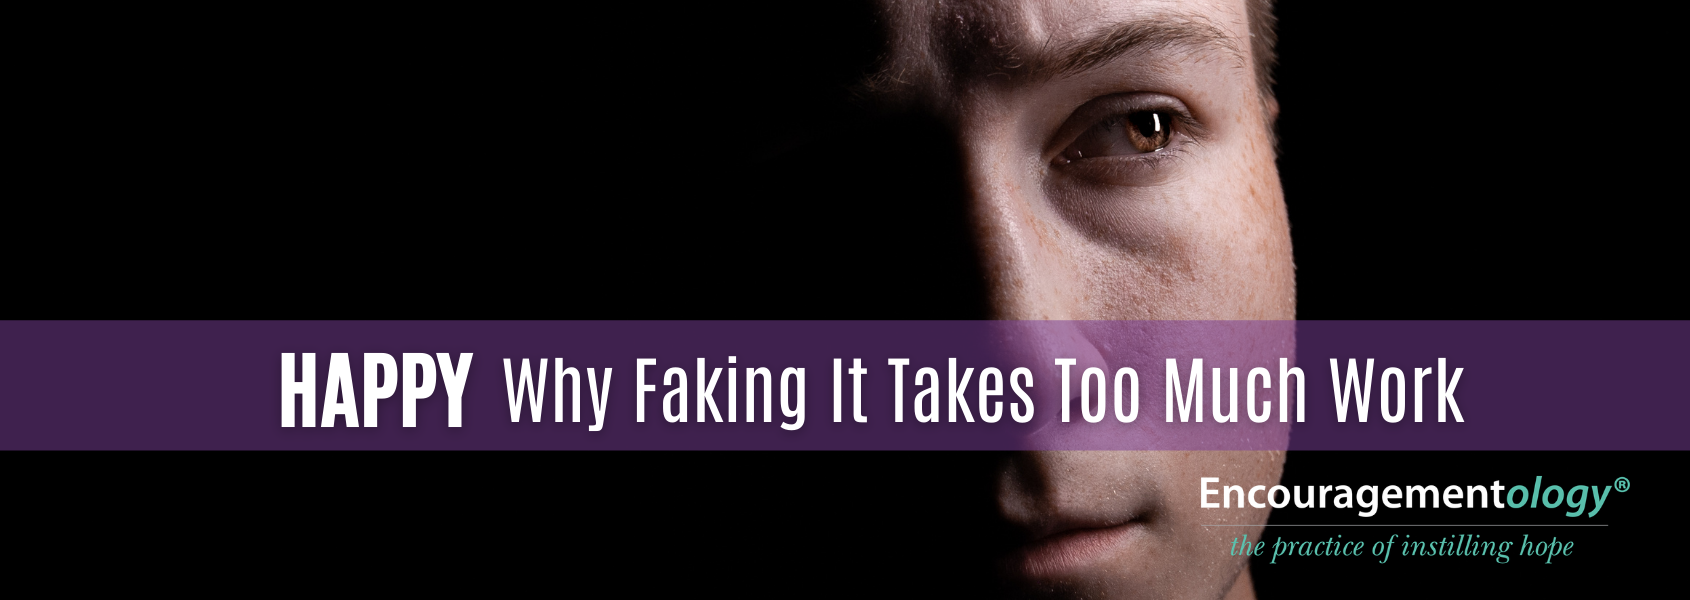 Finding happiness instead of faking it